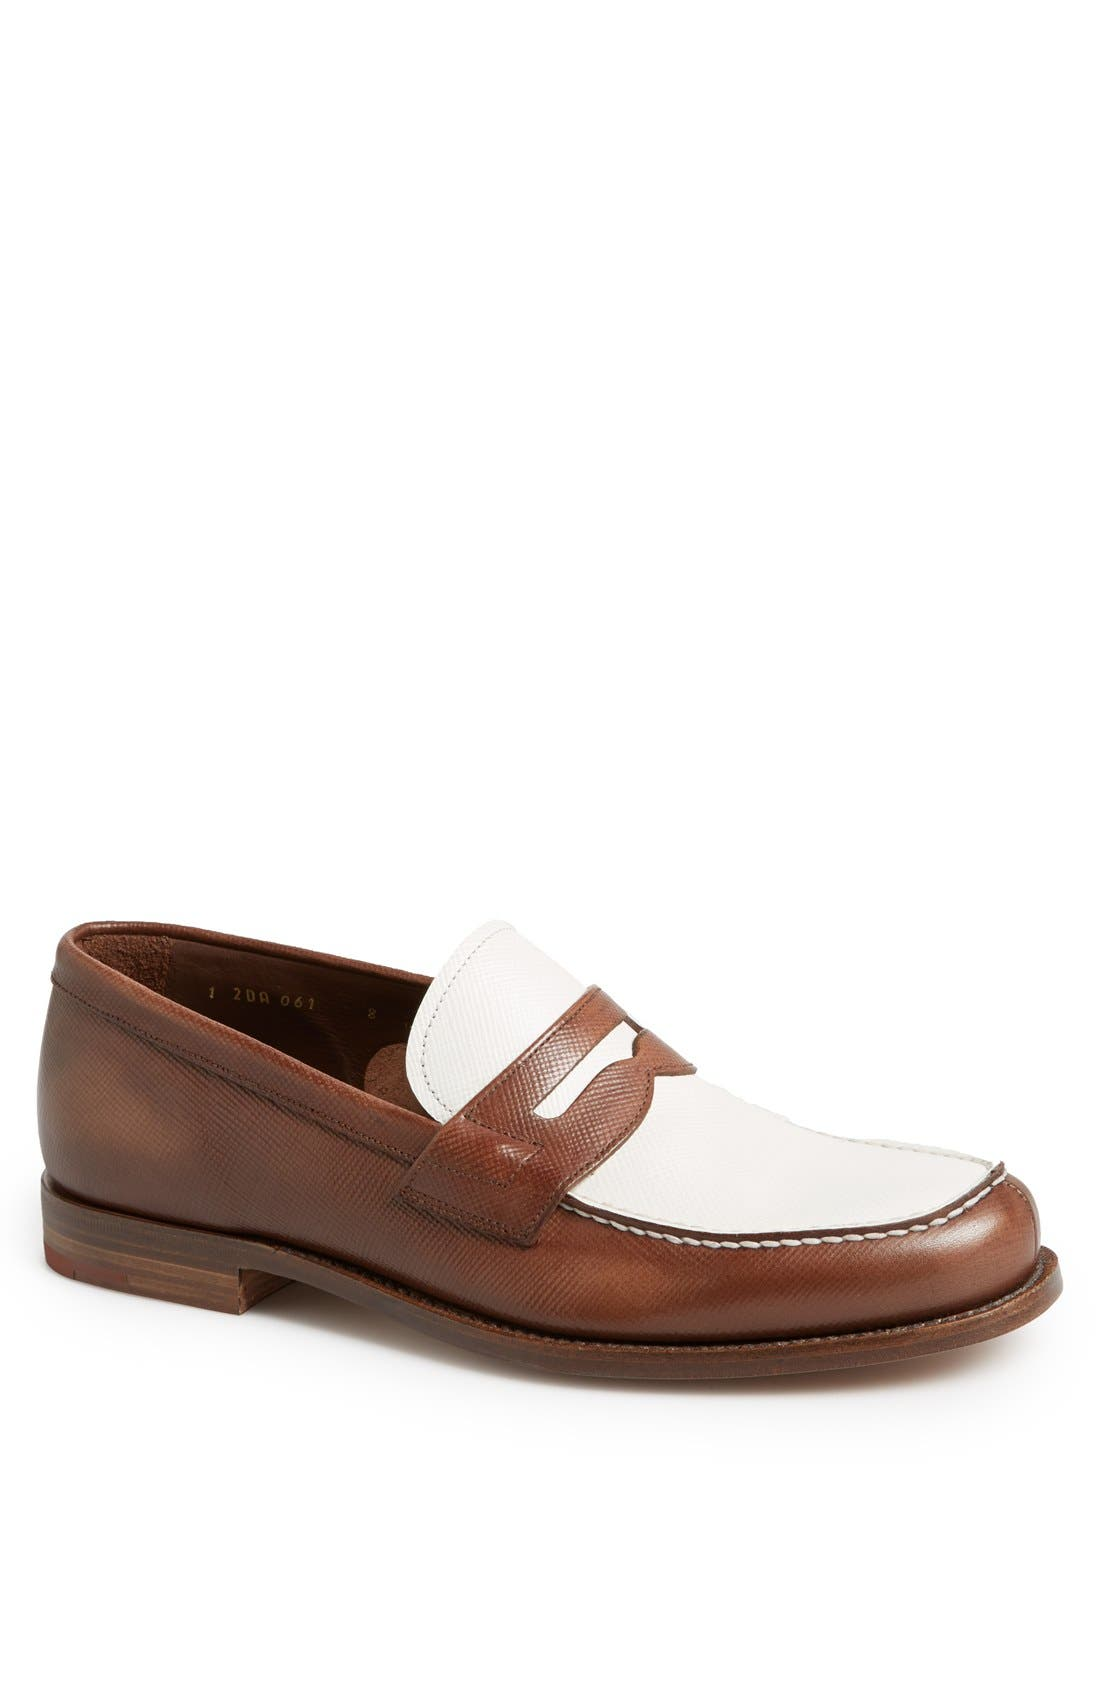 Alternate Image 1 Selected - Prada Saffiano Penny Loafer